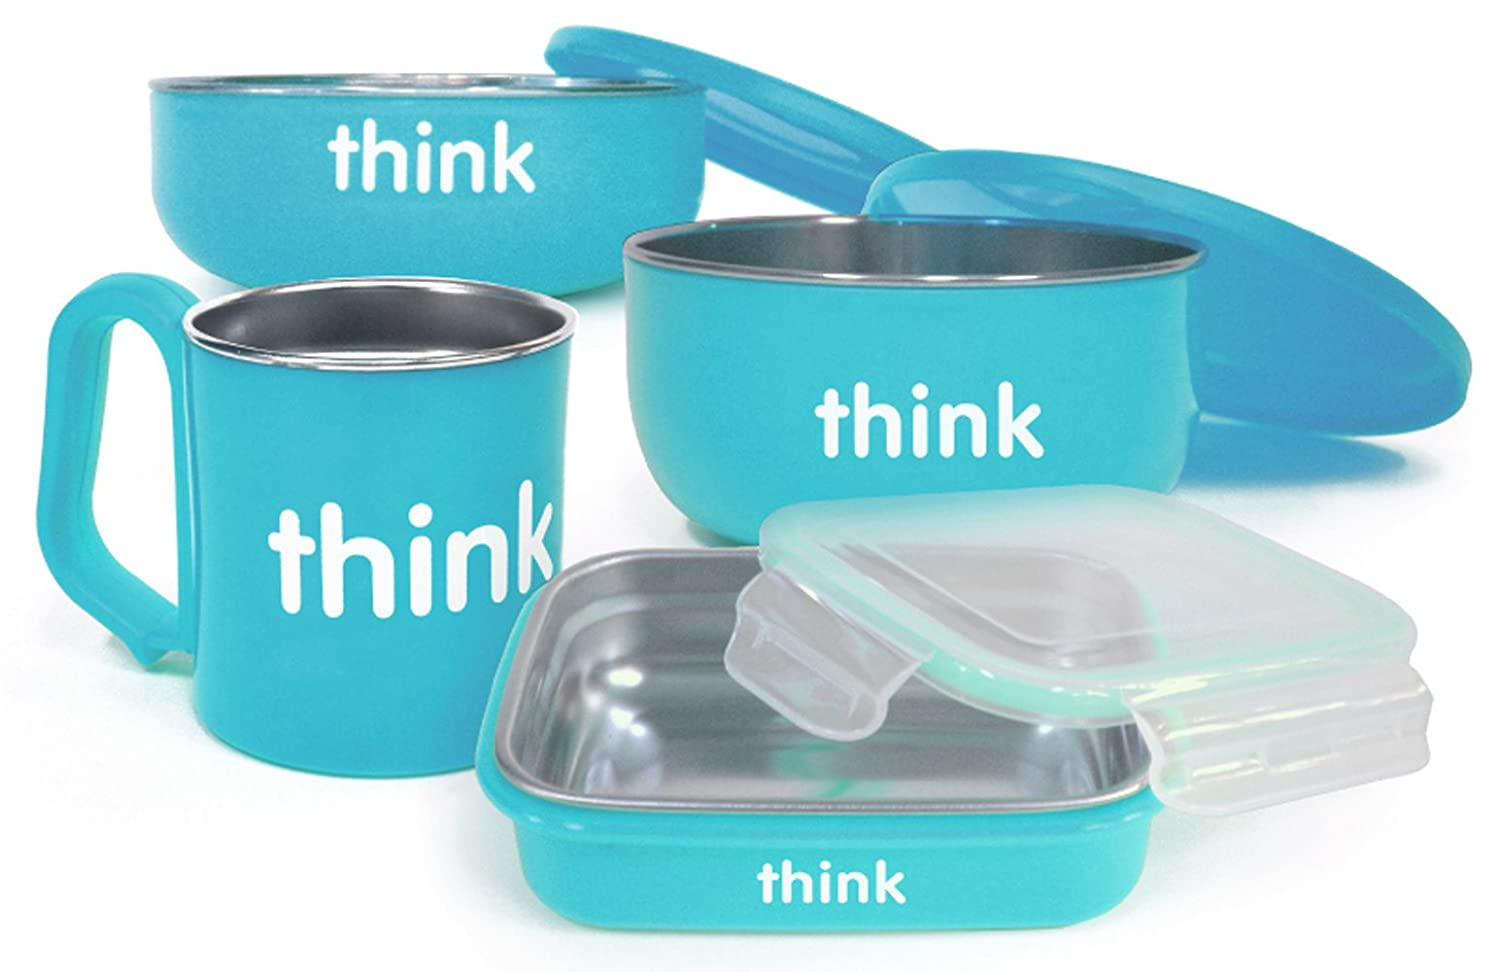 thinkbaby The Complete BPA Free Feeding Set, Light Blue 220102 - Lt Blue